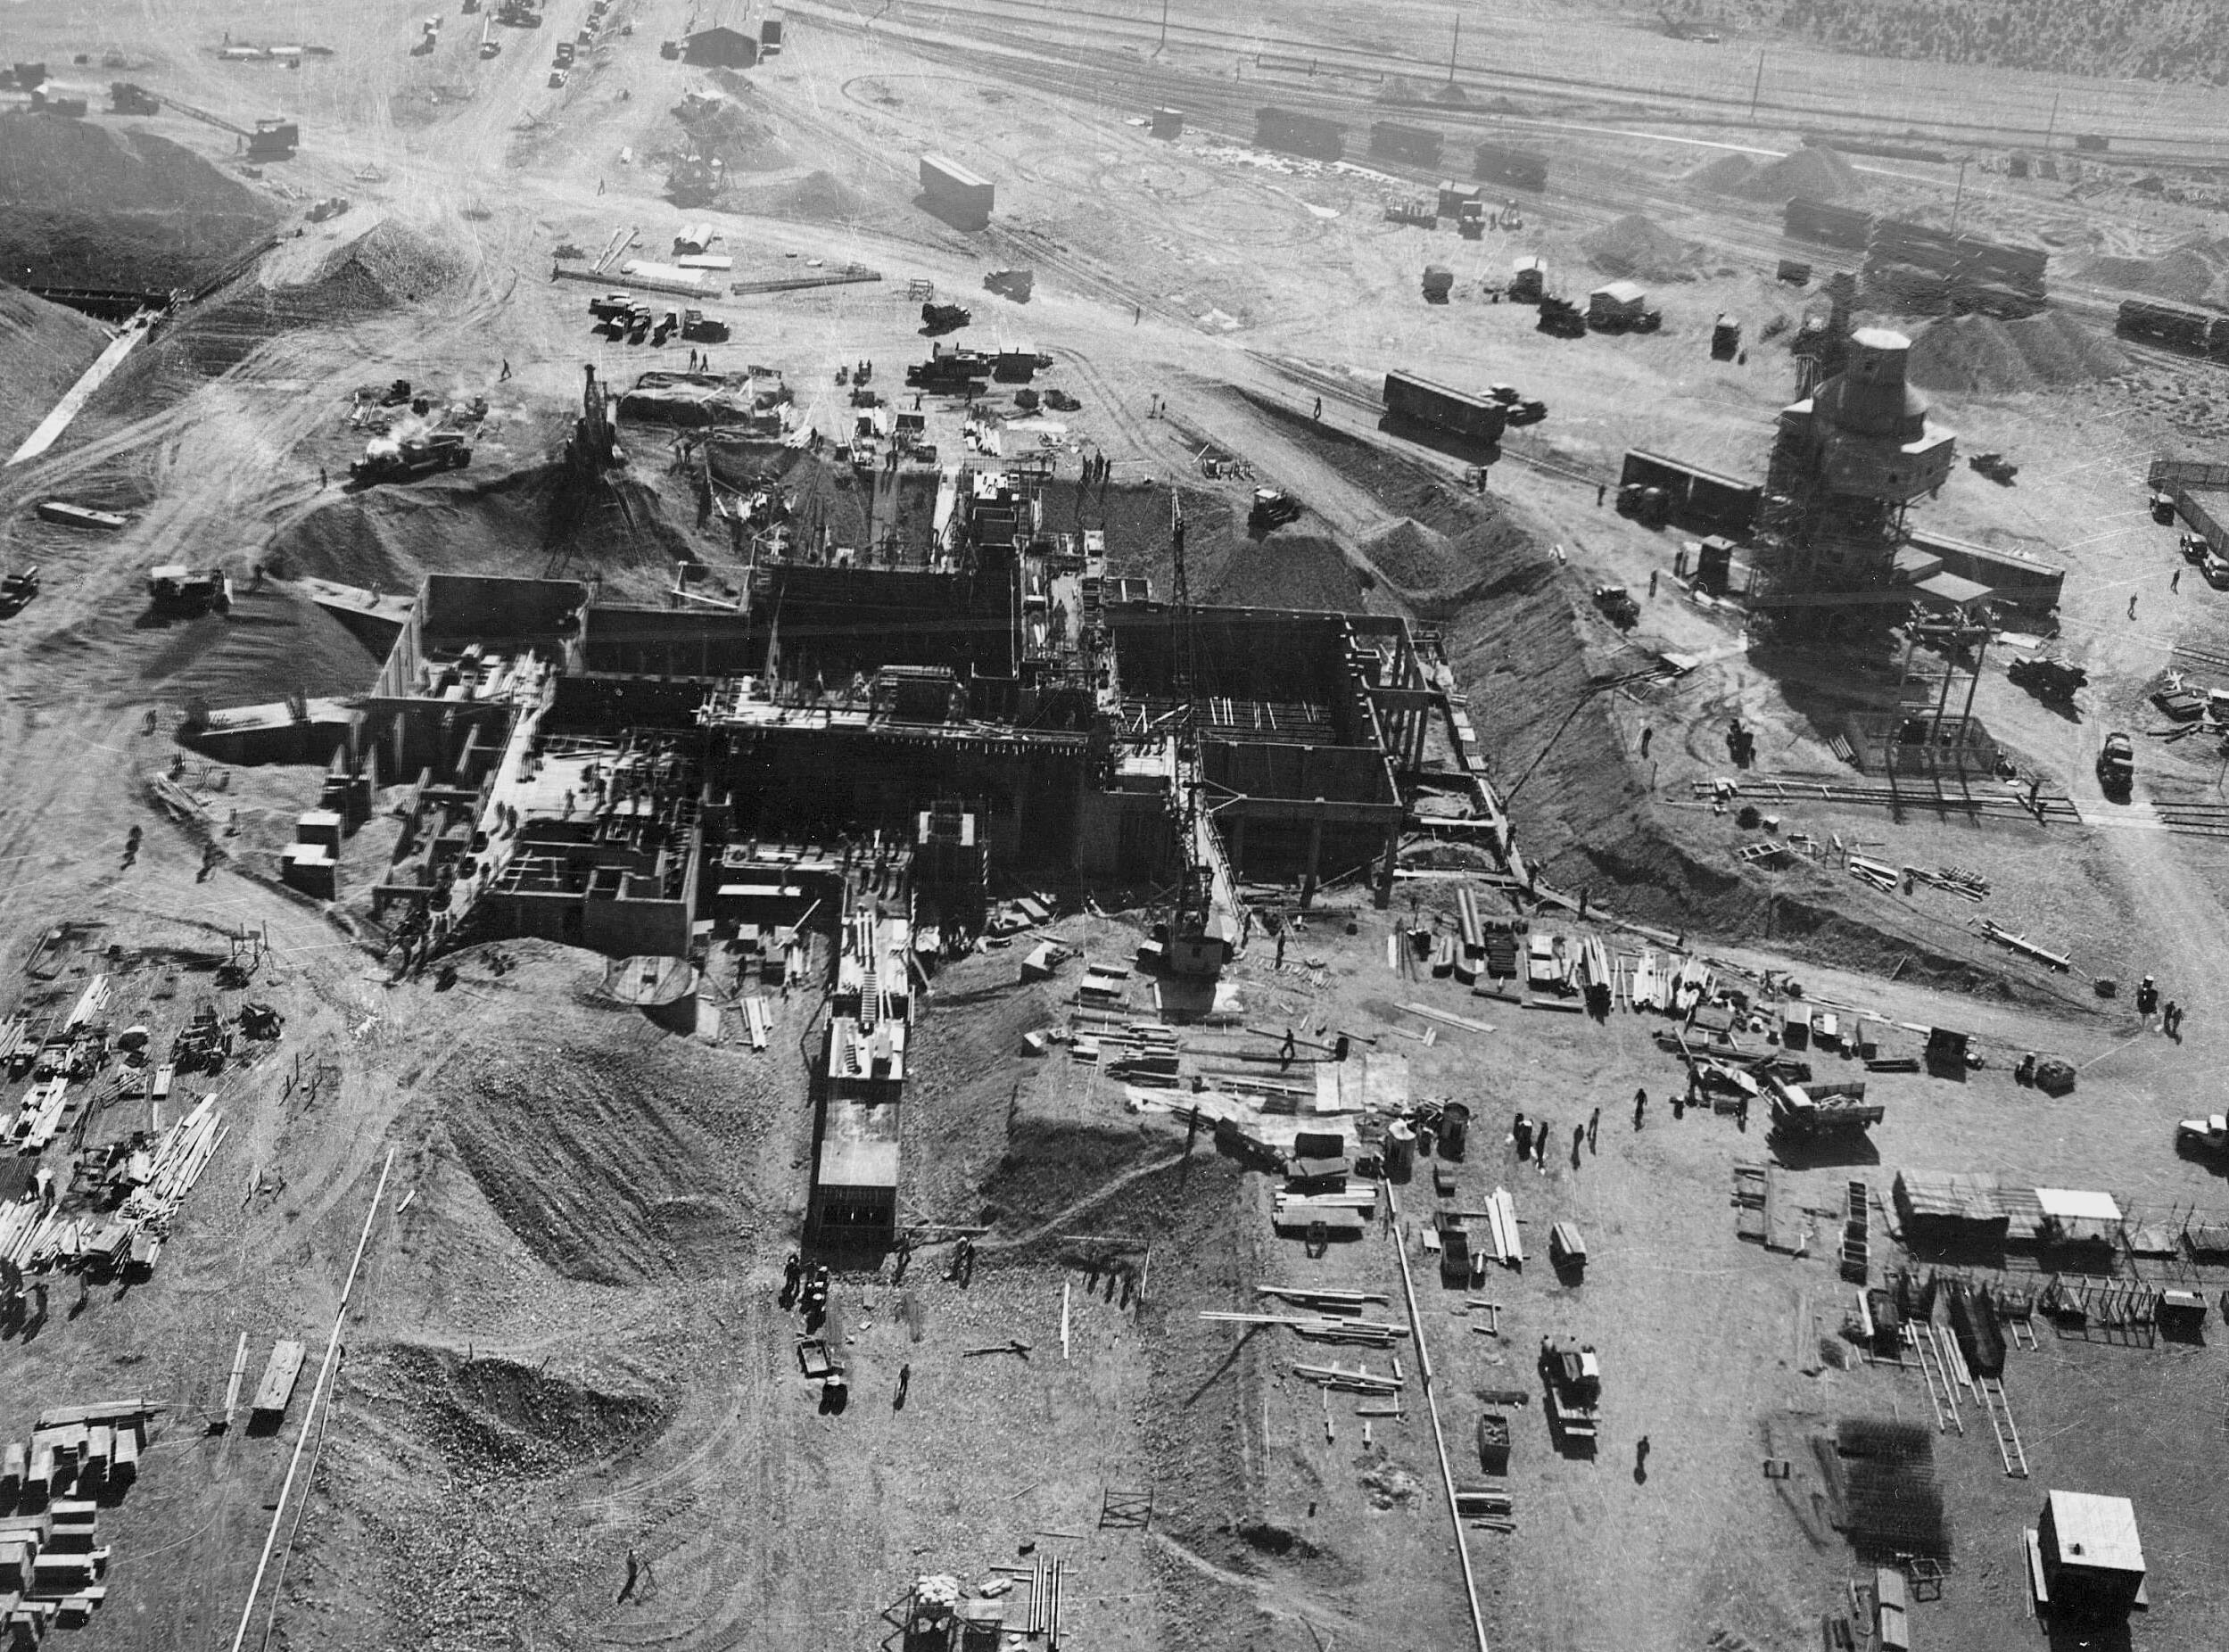 atomic bomb manhattan project The manhattan project was the result of an enormous collaborative effort between the us government and the industrial and scientific sectors in just 27 months, the anglo-american effort accomplished what other nations thought impossible – the construction of an atomic bomb.